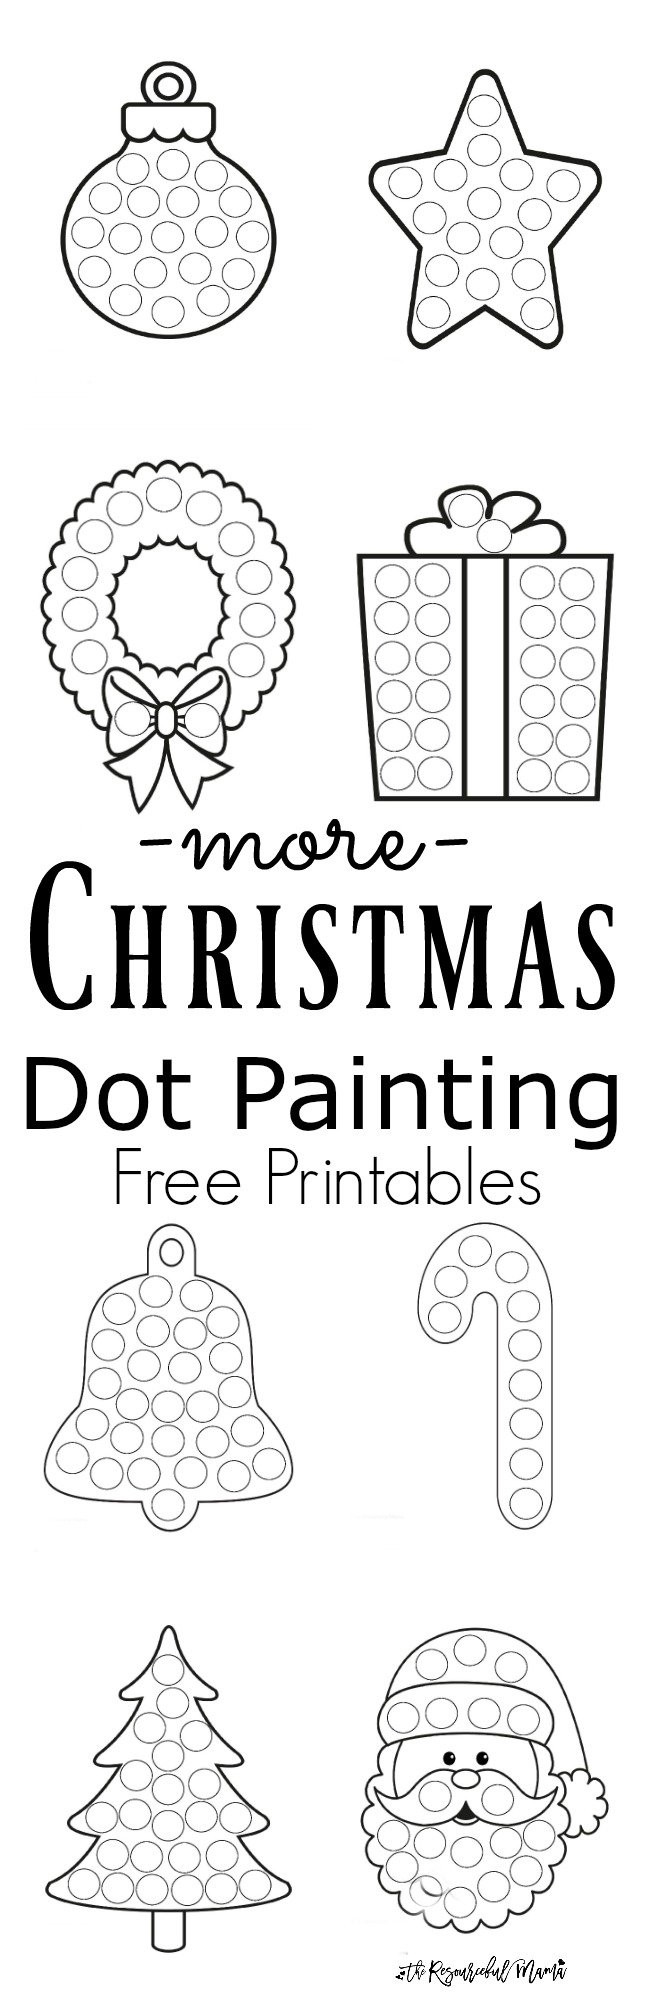 Christmas Dot to Dot Printables More Christmas Dot Painting Free Printables the